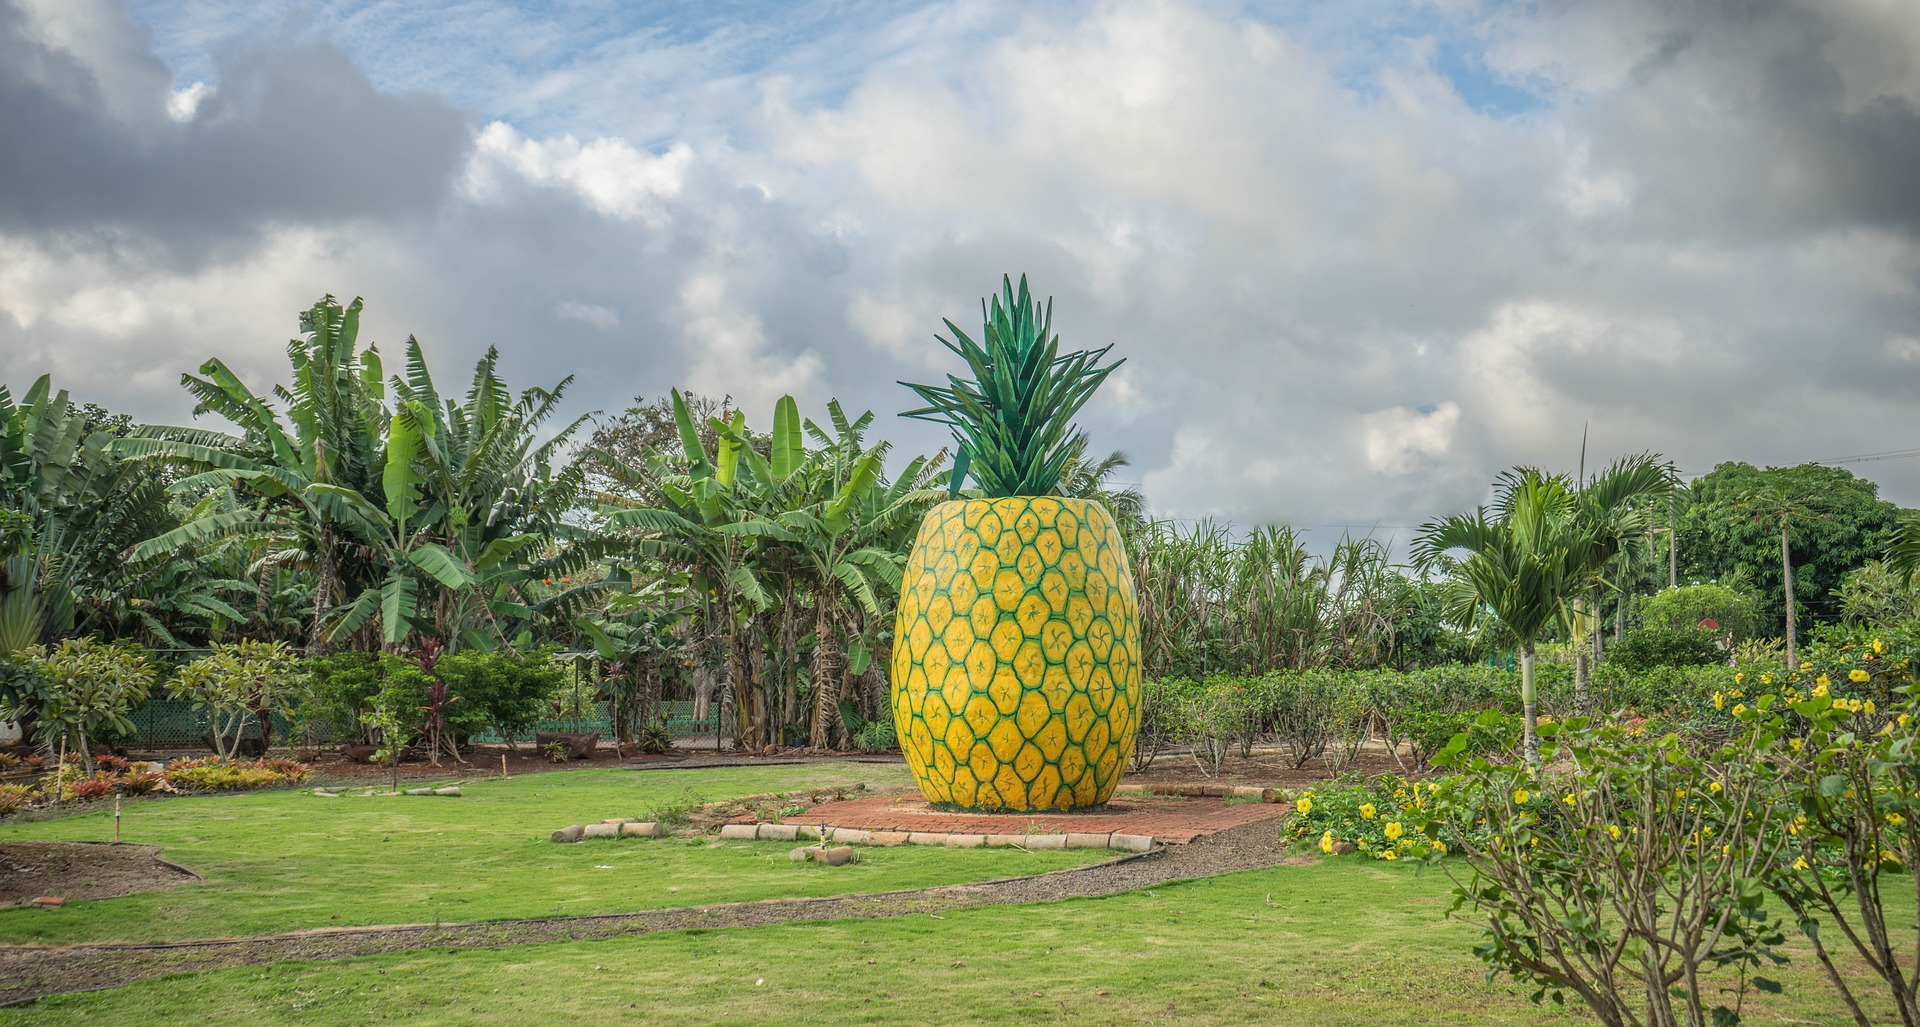 Family activities near Aulani list item three: the Dole Plantation